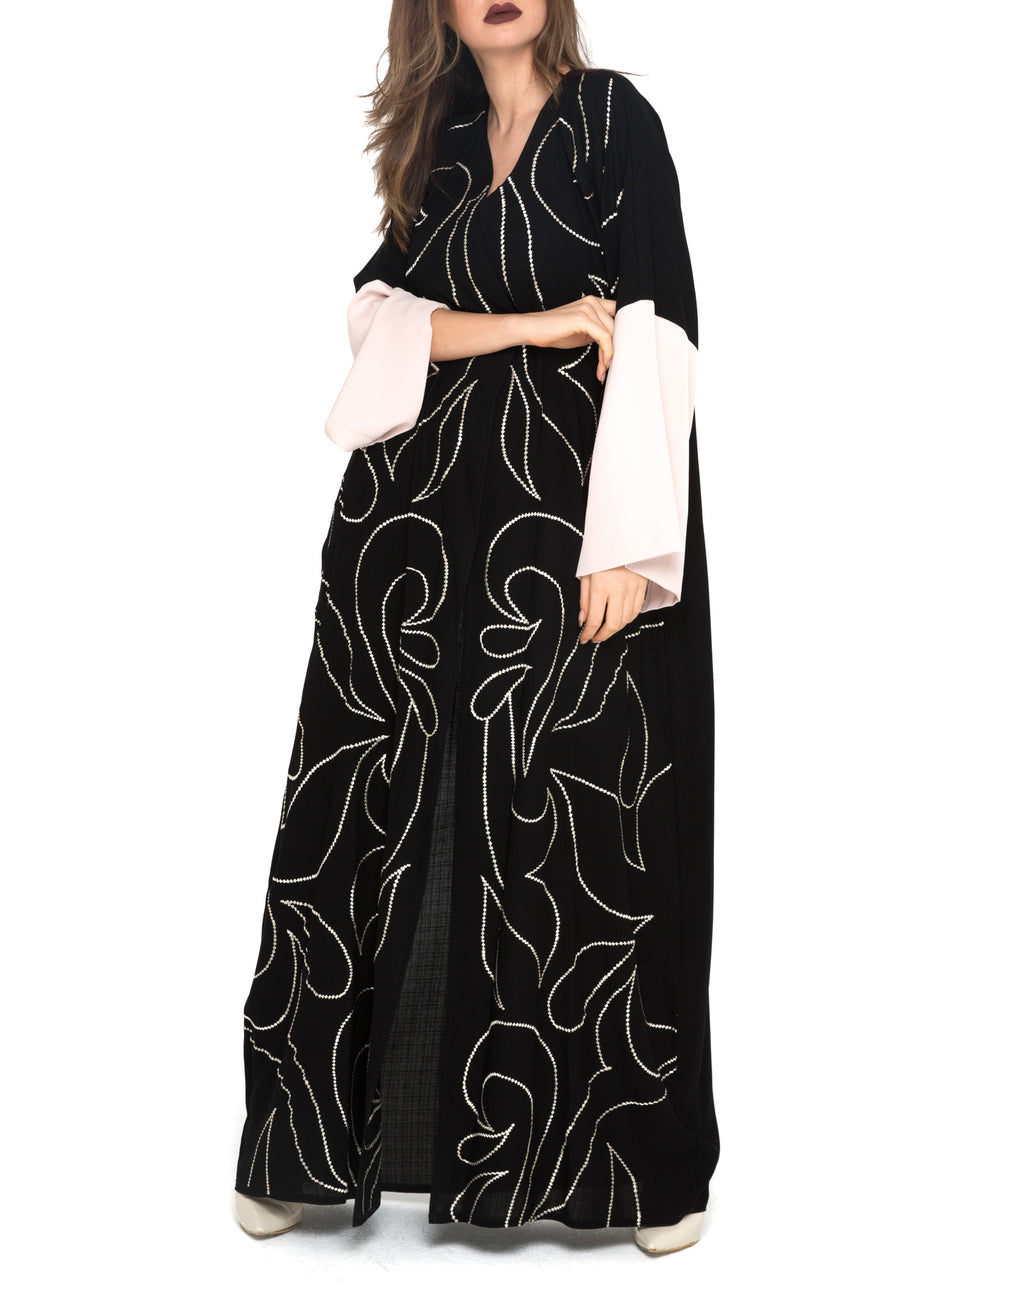 Swirly Floral Embroidery Abaya